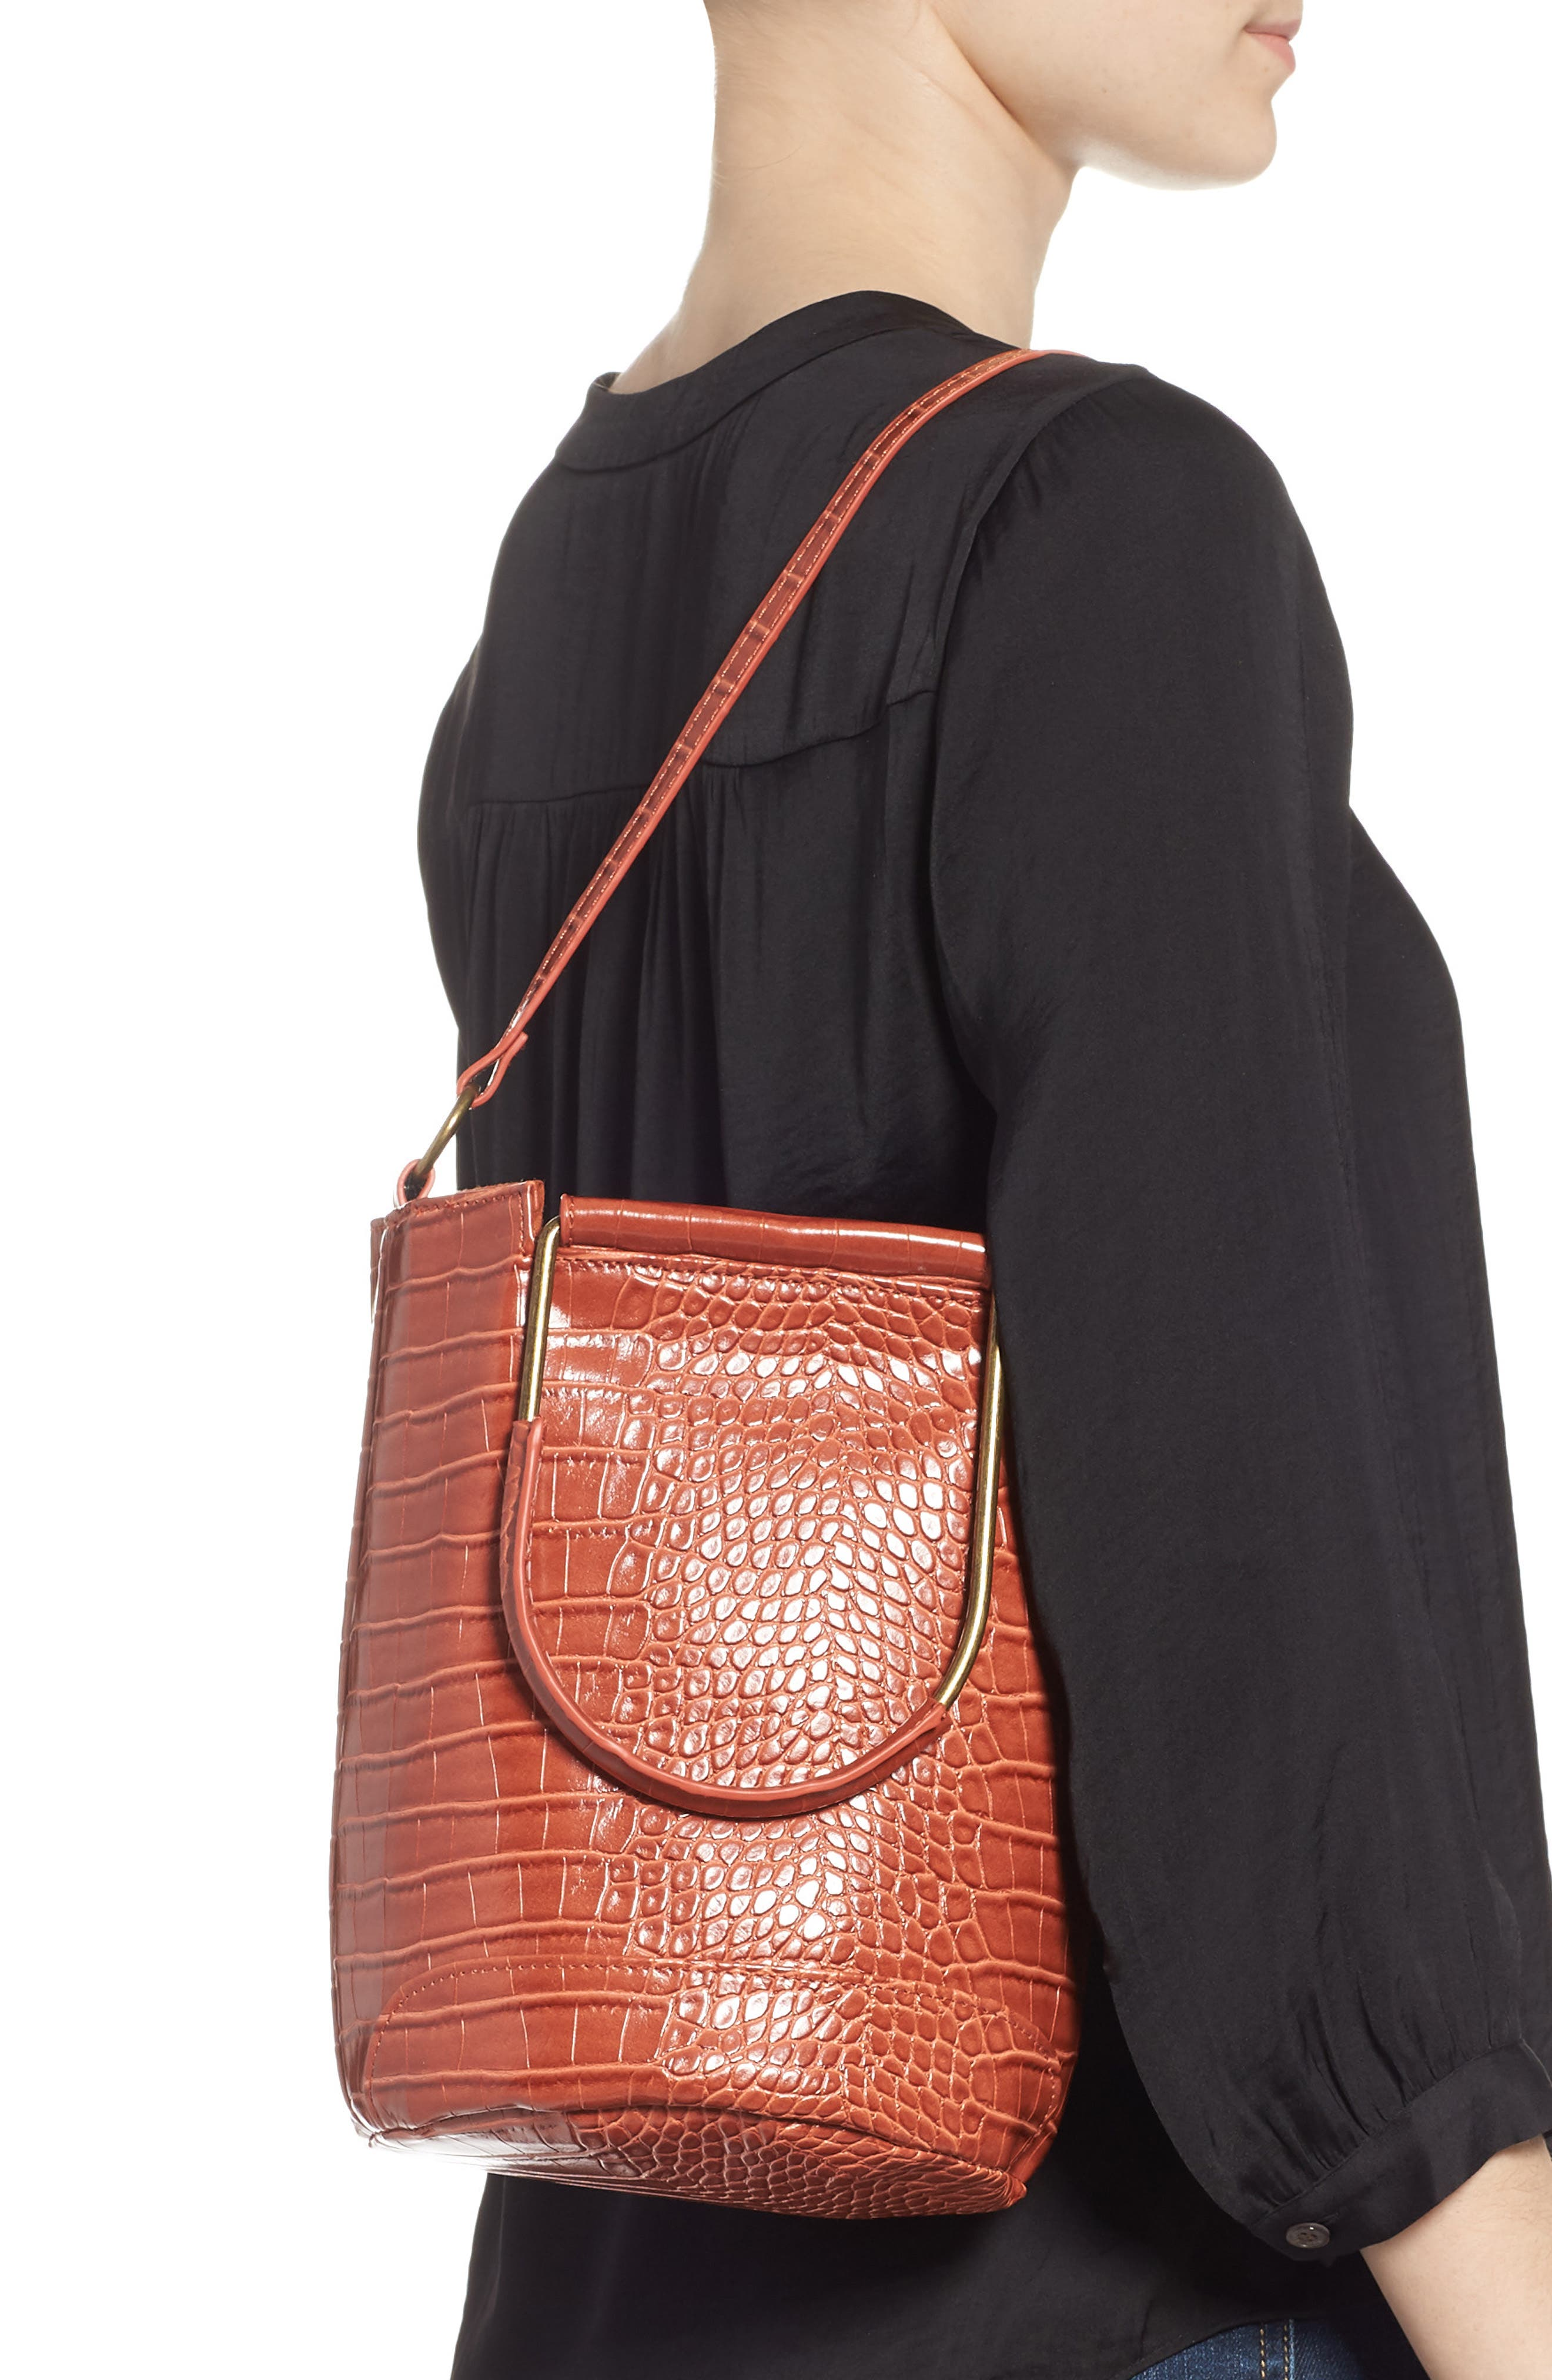 T-SHIRT & JEANS, Croc Embossed Faux Leather Tote, Alternate thumbnail 2, color, 810